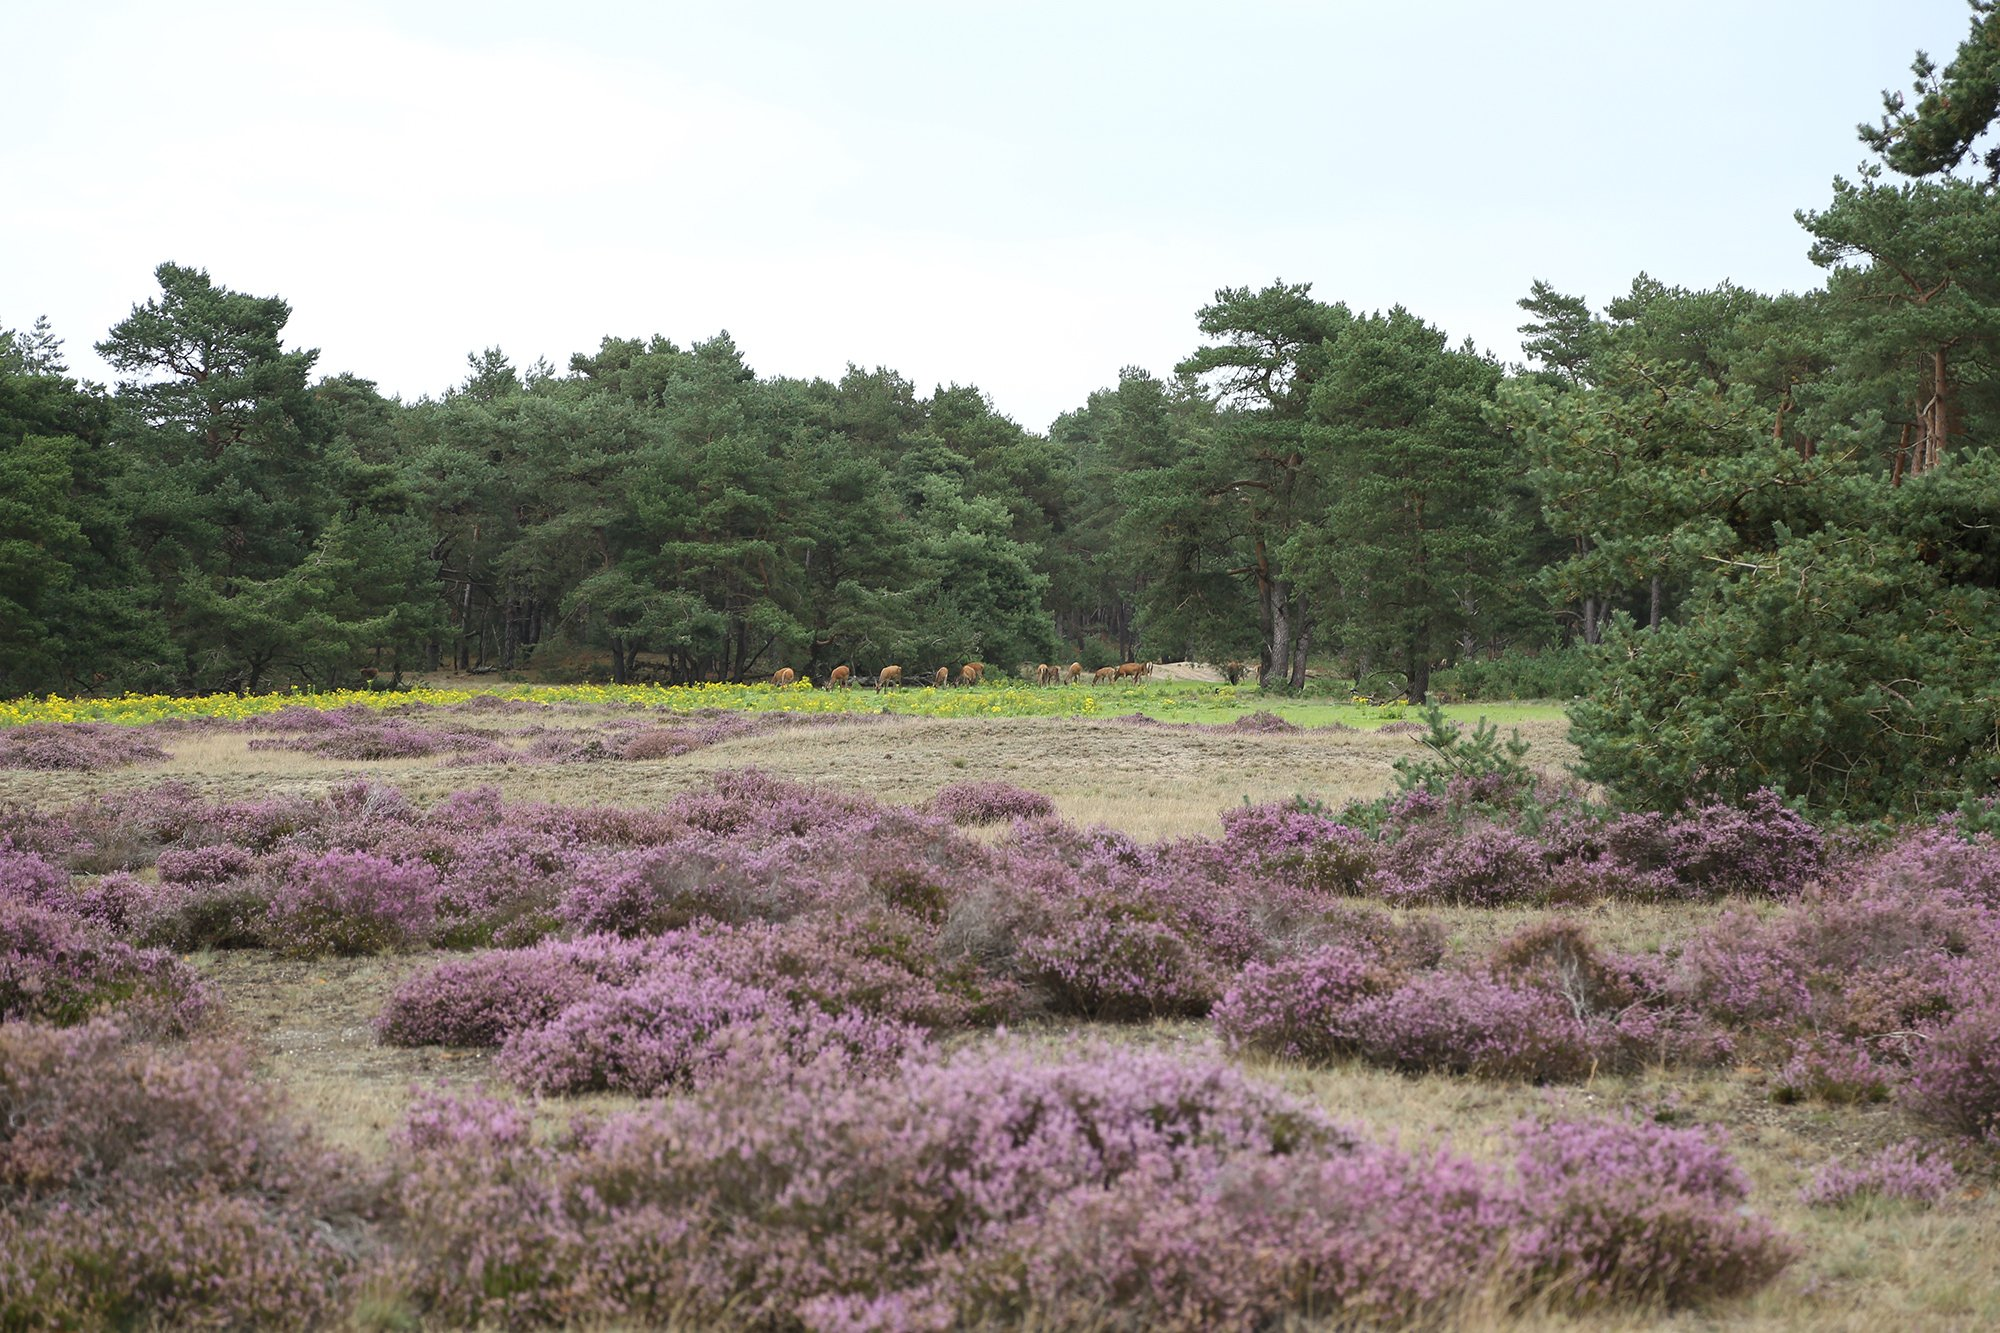 Purple heathlands in De Hoge Veluwe national park with deer grazing in the distance